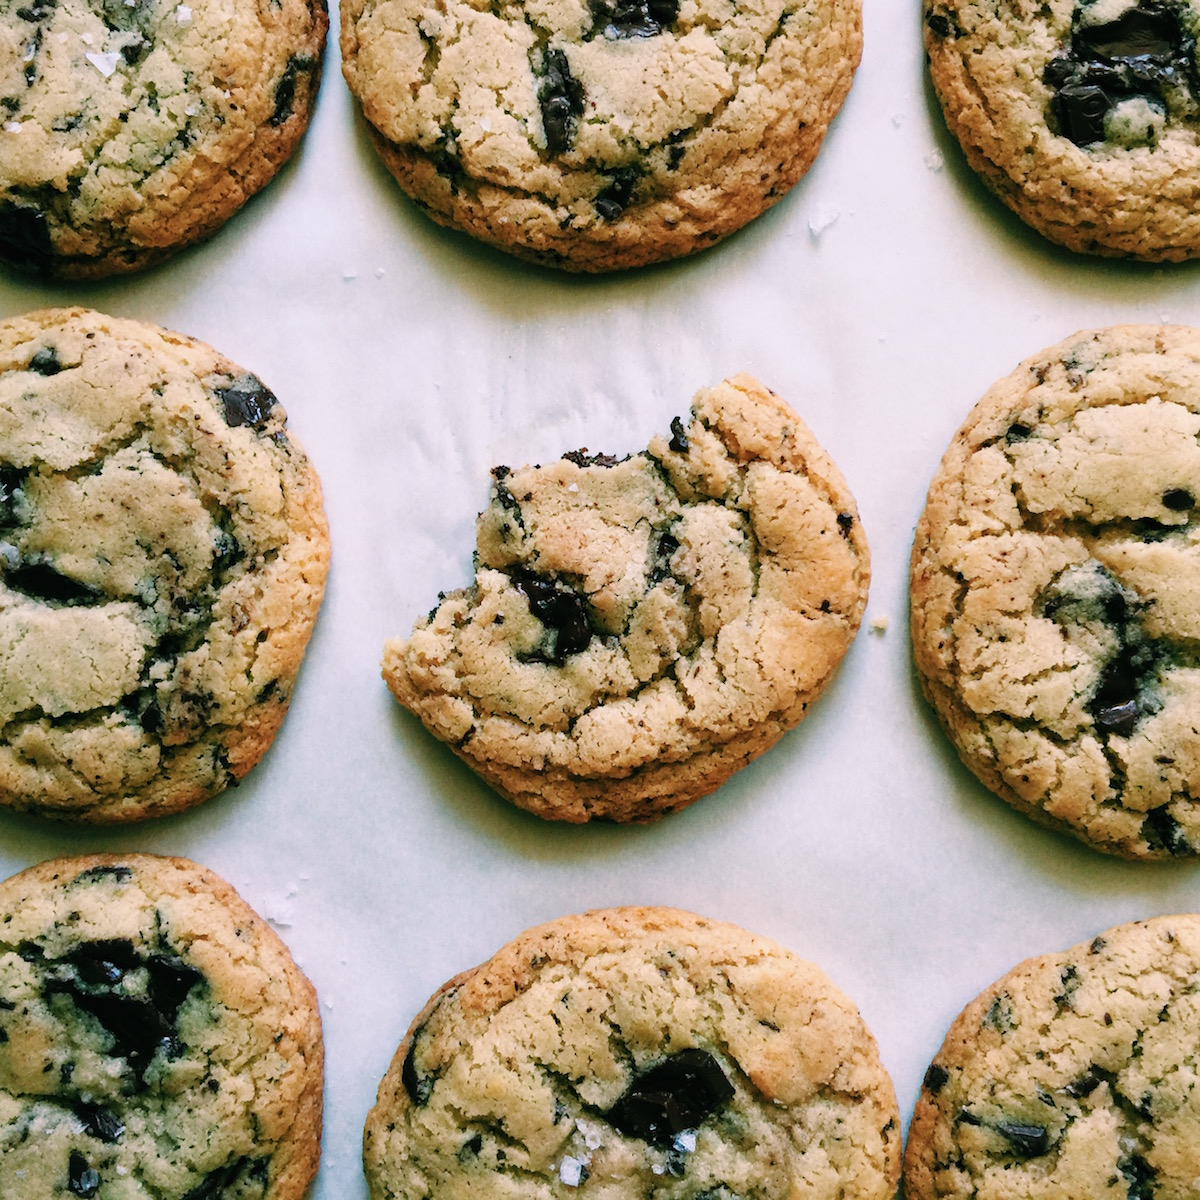 Your Best Gluten-Free Cookie Ever | HuffPost